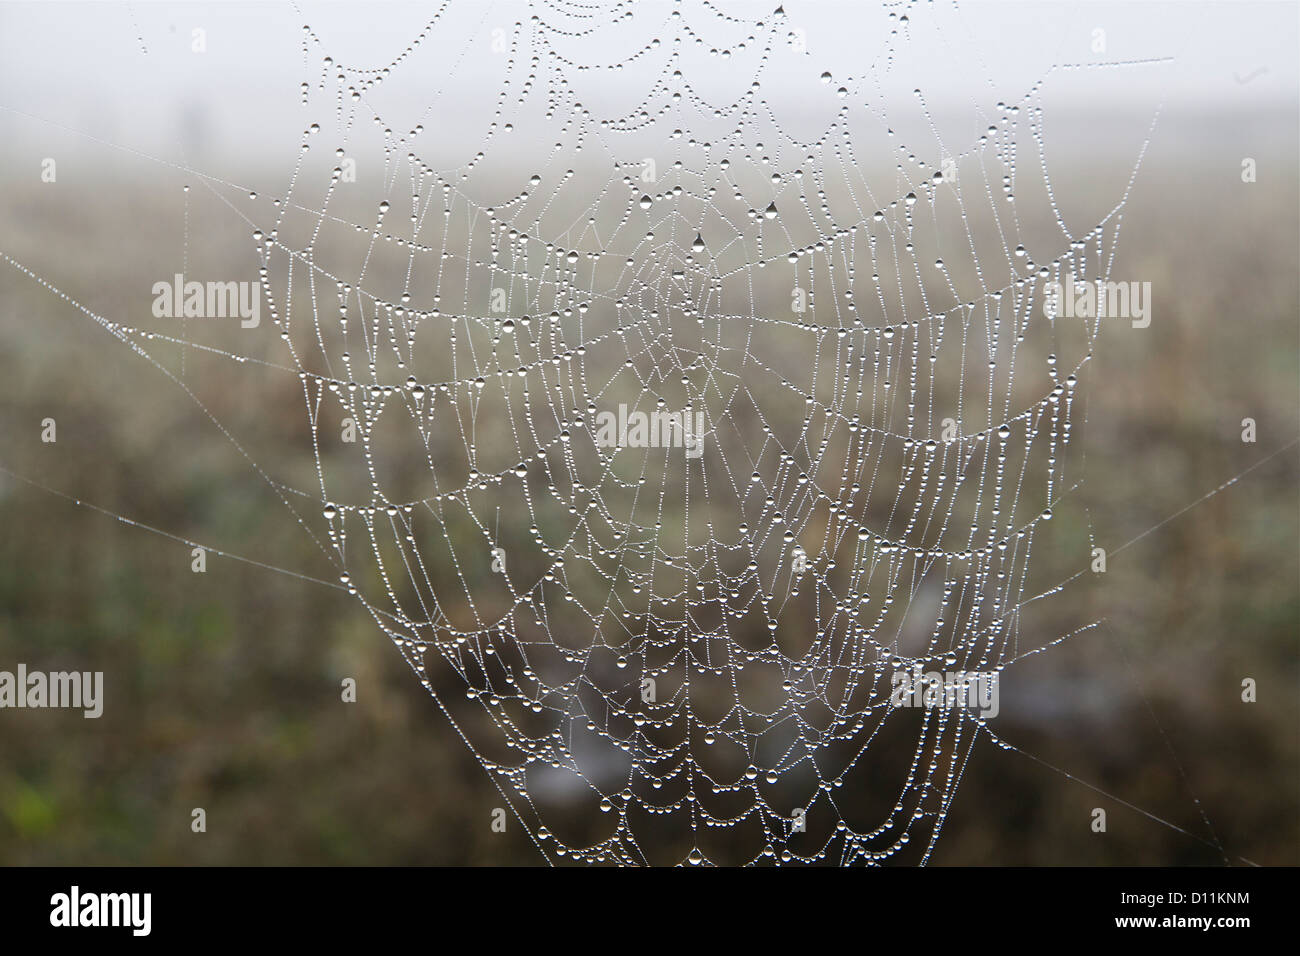 Rain droplets on the spider web like bead on lace sparkle in the light - Stock Image